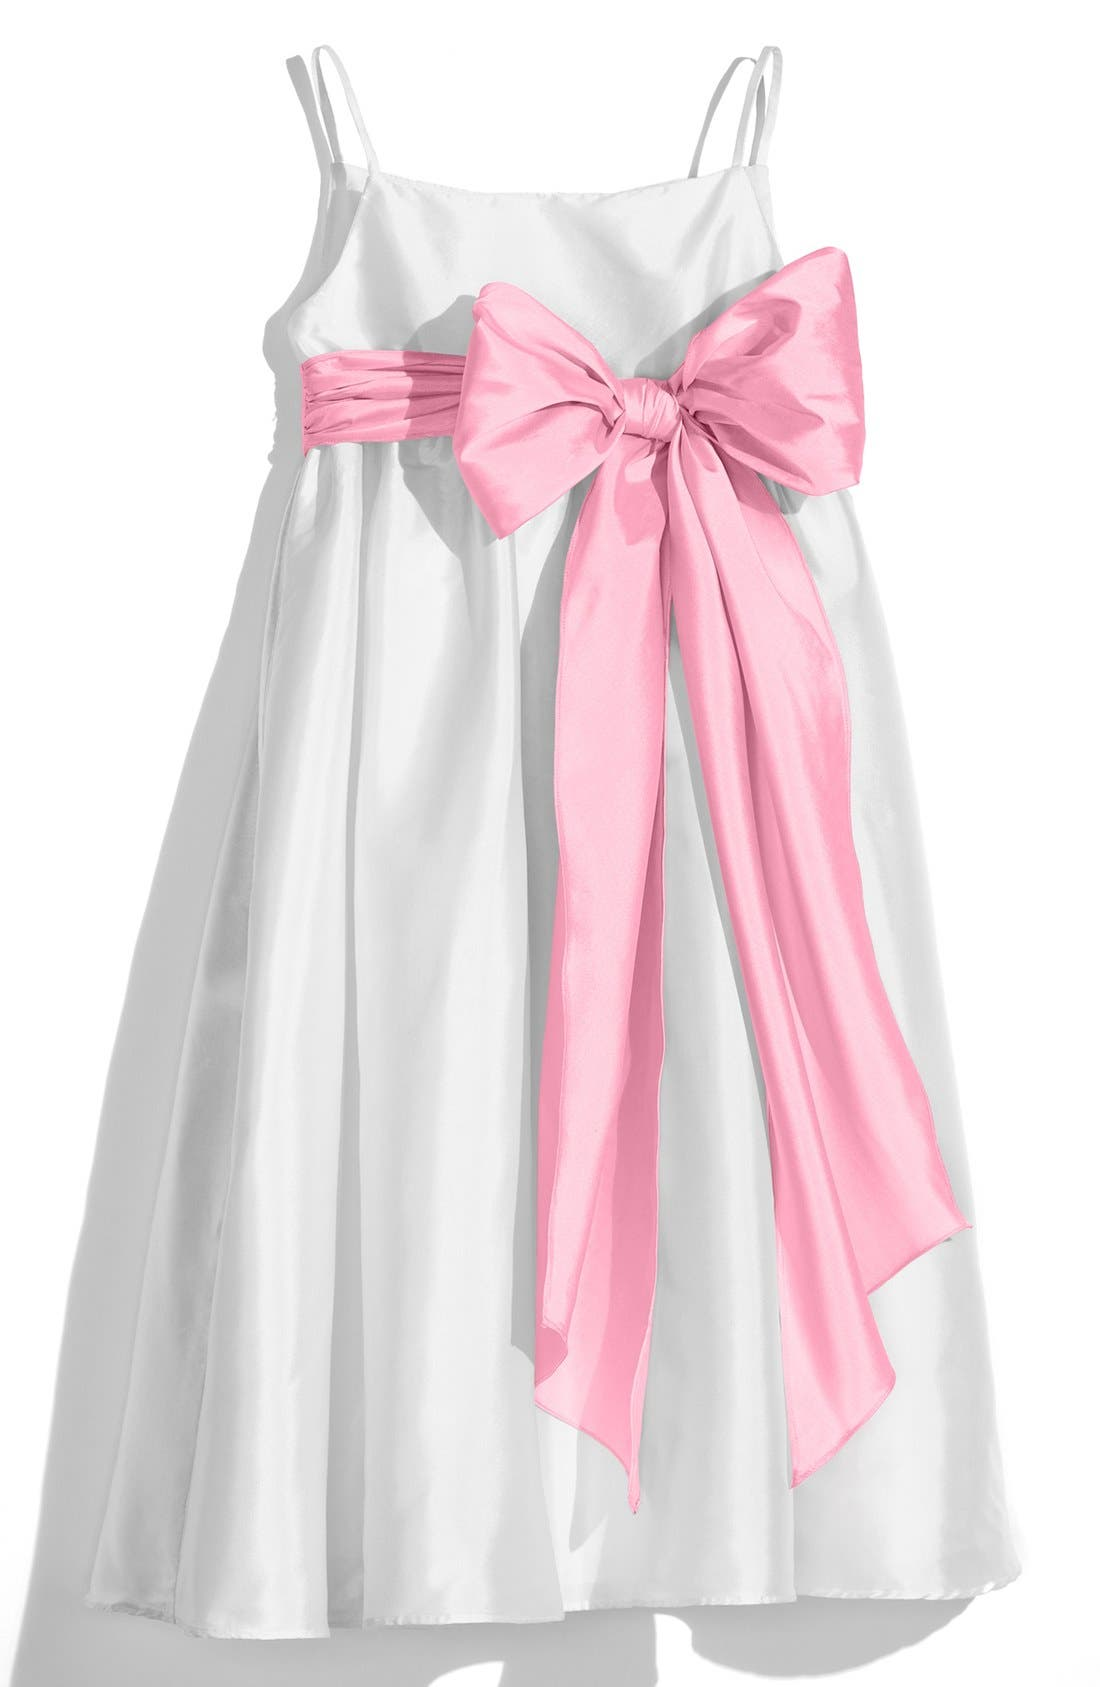 White Sleeveless Empire Waist Taffeta Dress,                             Main thumbnail 1, color,                             White/ Cotton Candy